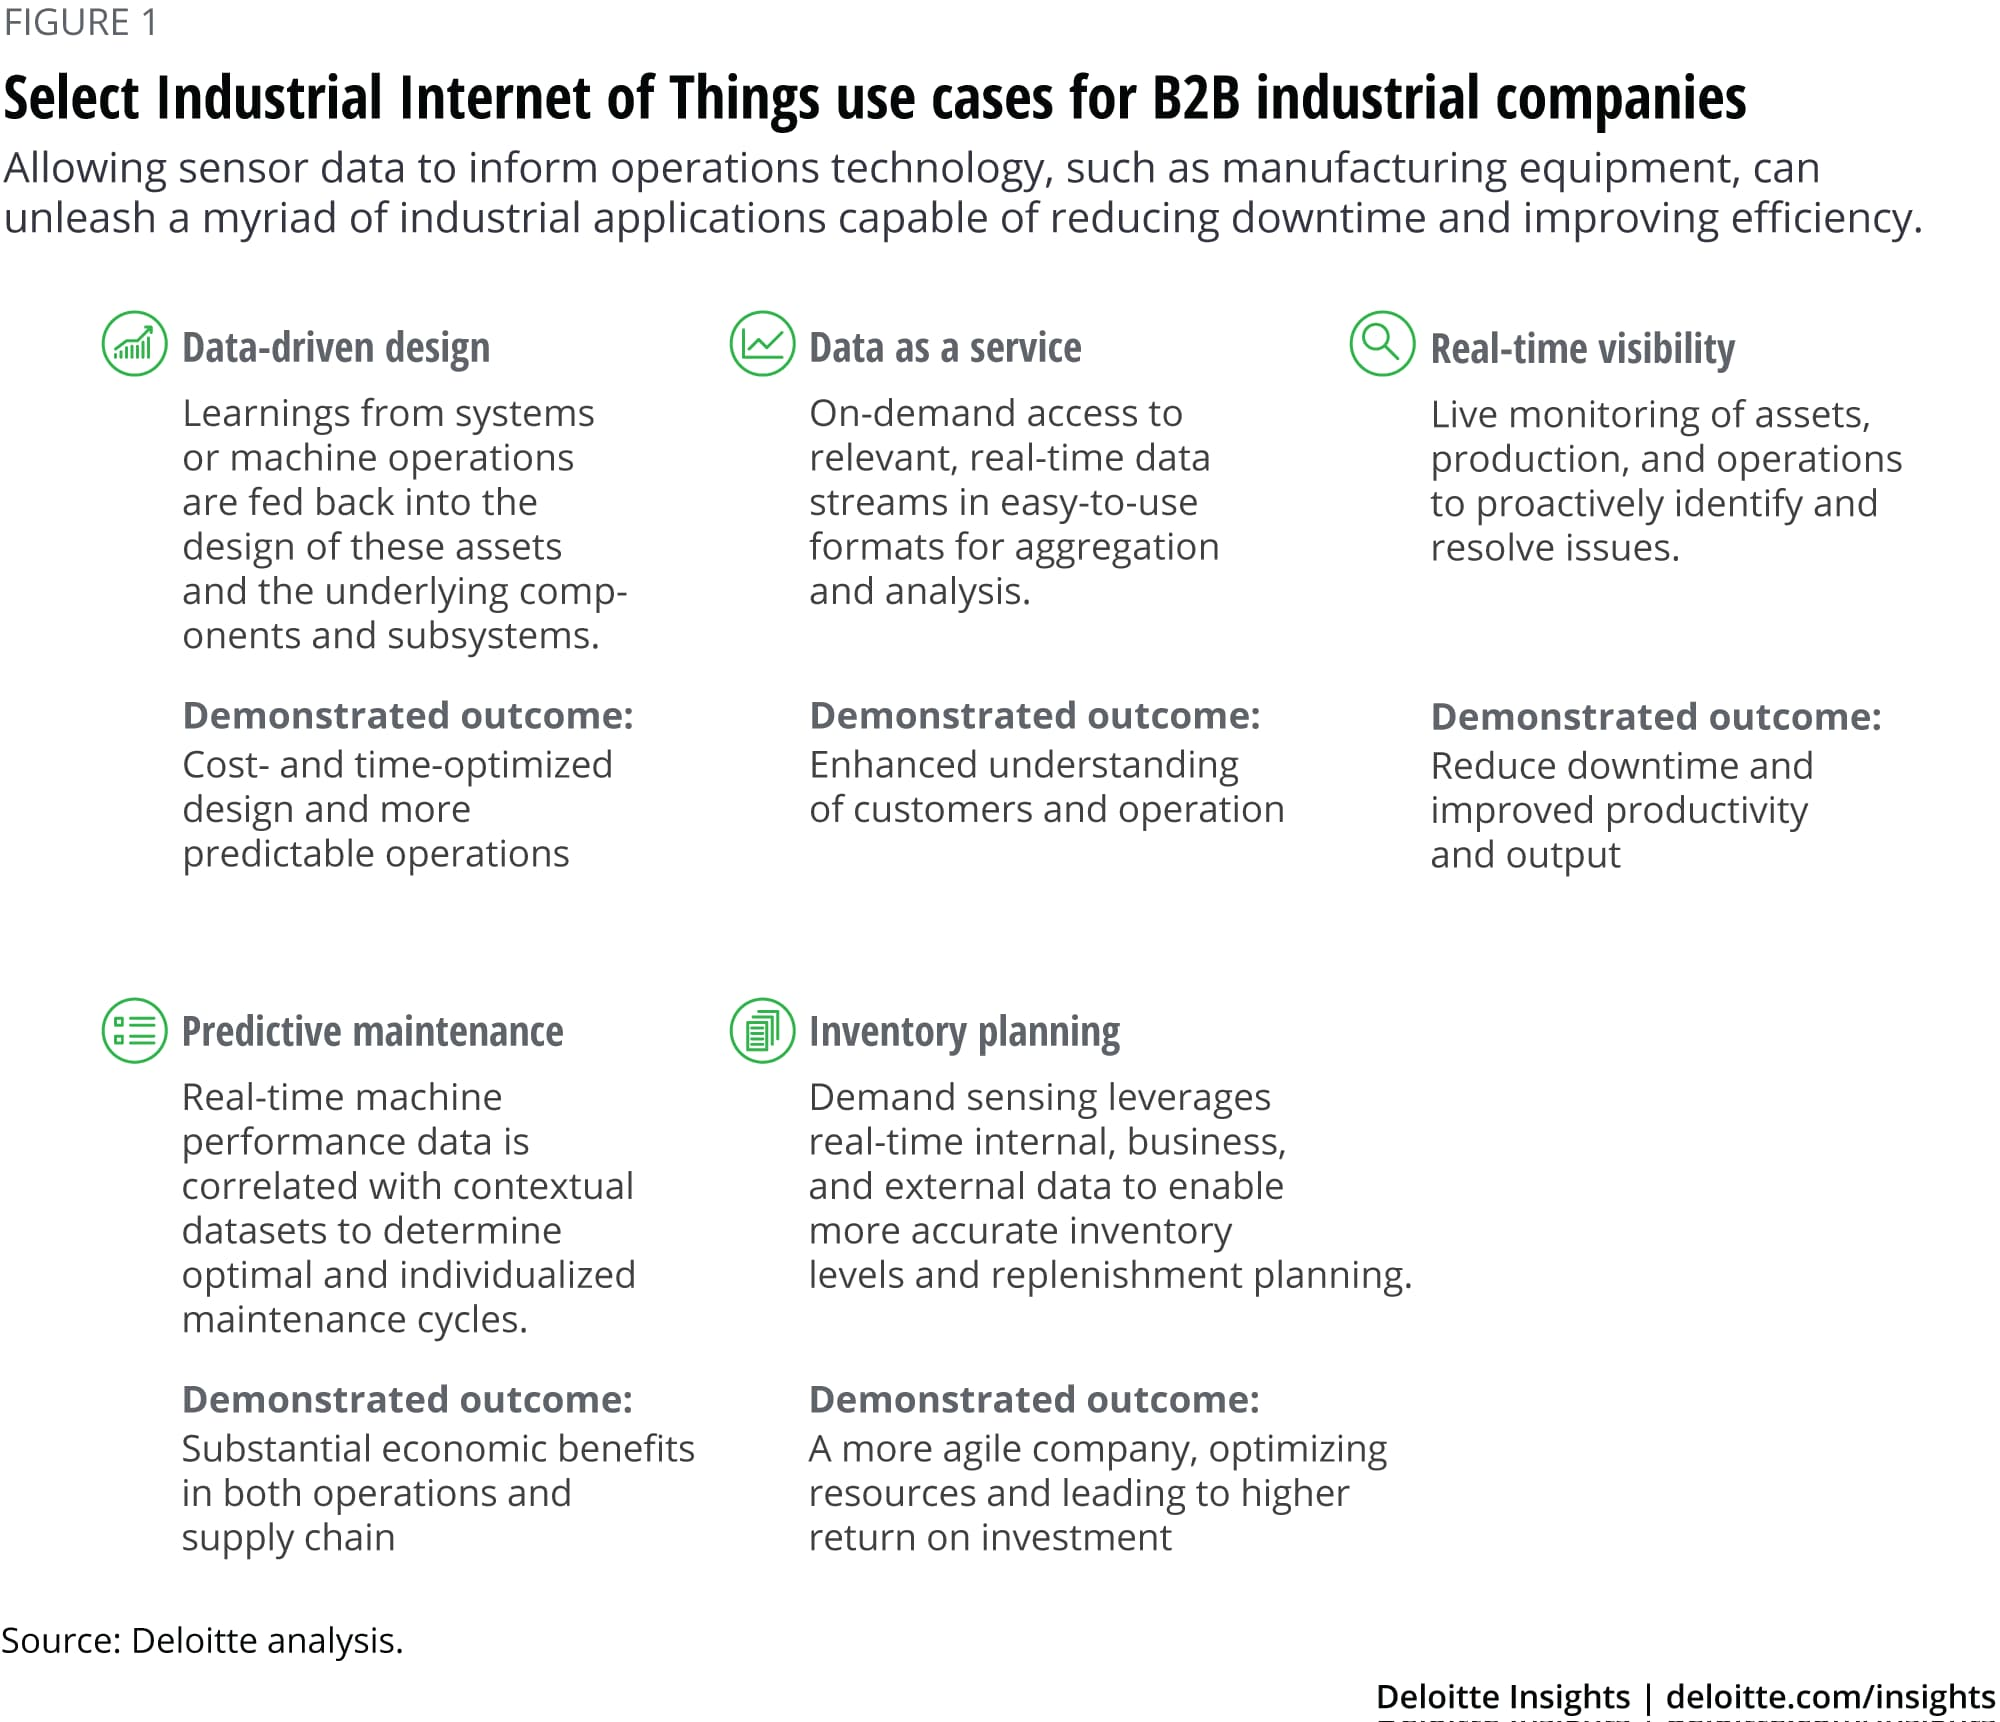 Select Industrial Internet of Things use cases for B2B industrial companies